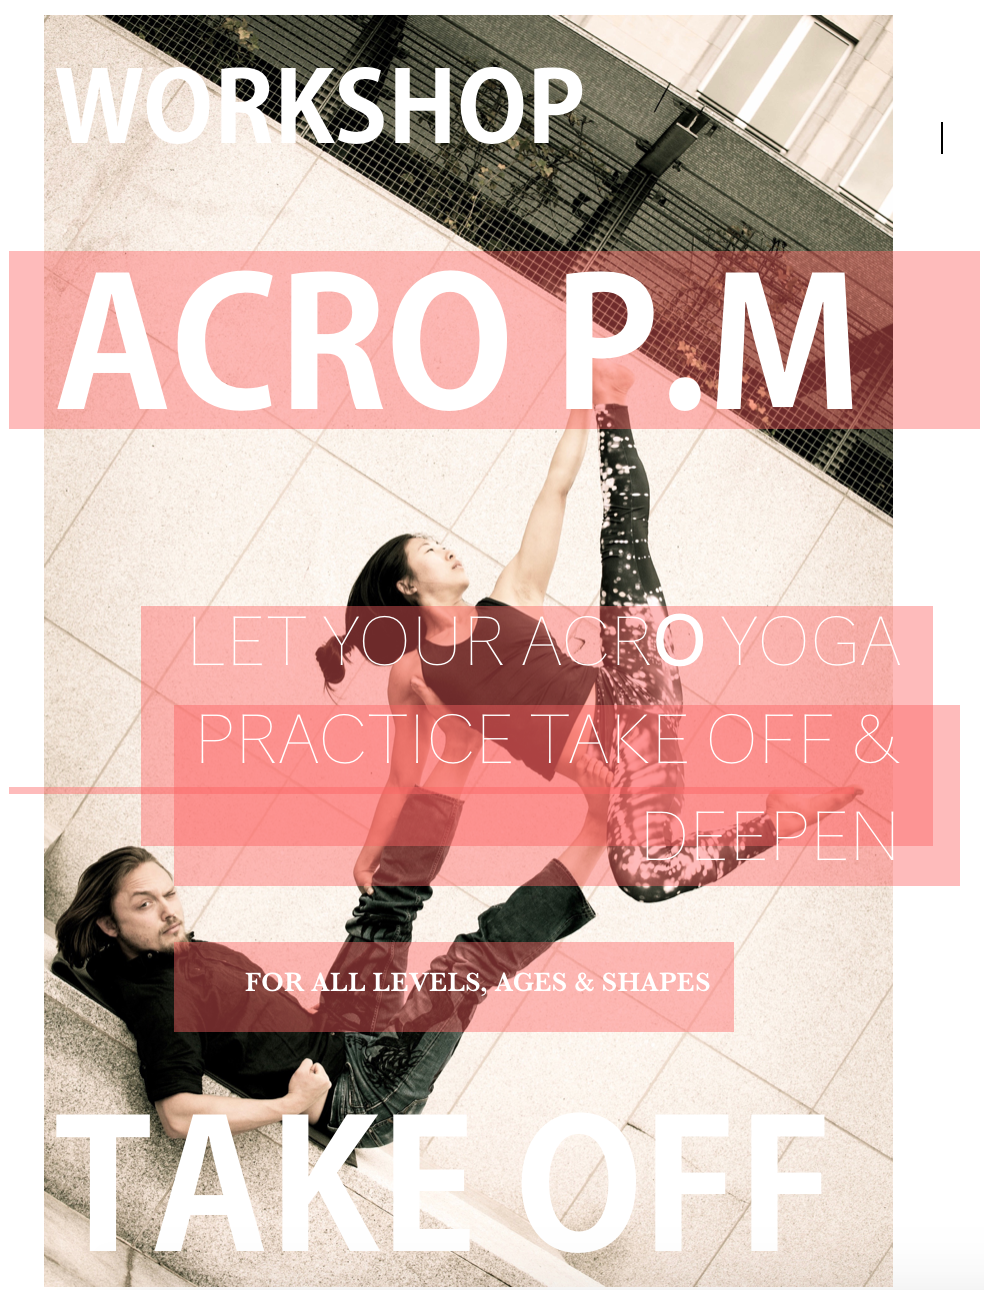 Acro P.M Workshop : Saturday 27th August 3-6pm